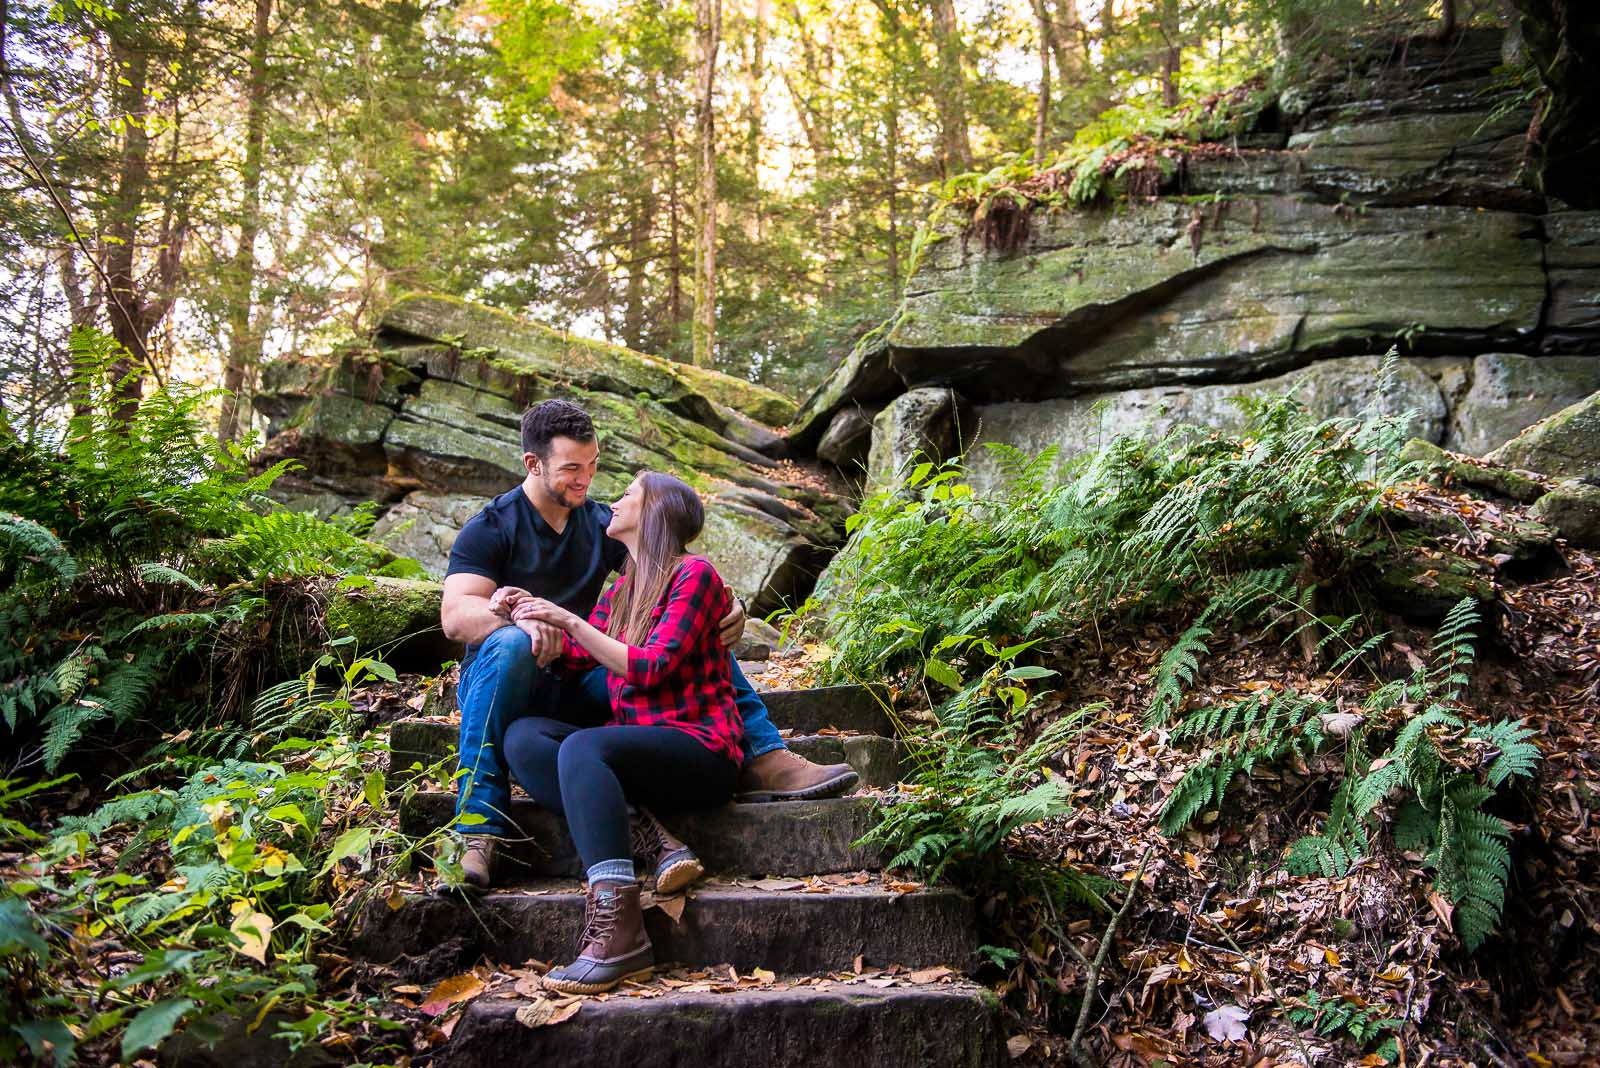 Eric_and_Christy_Photography_Blog_Stephanie_Nick_Engagement-12